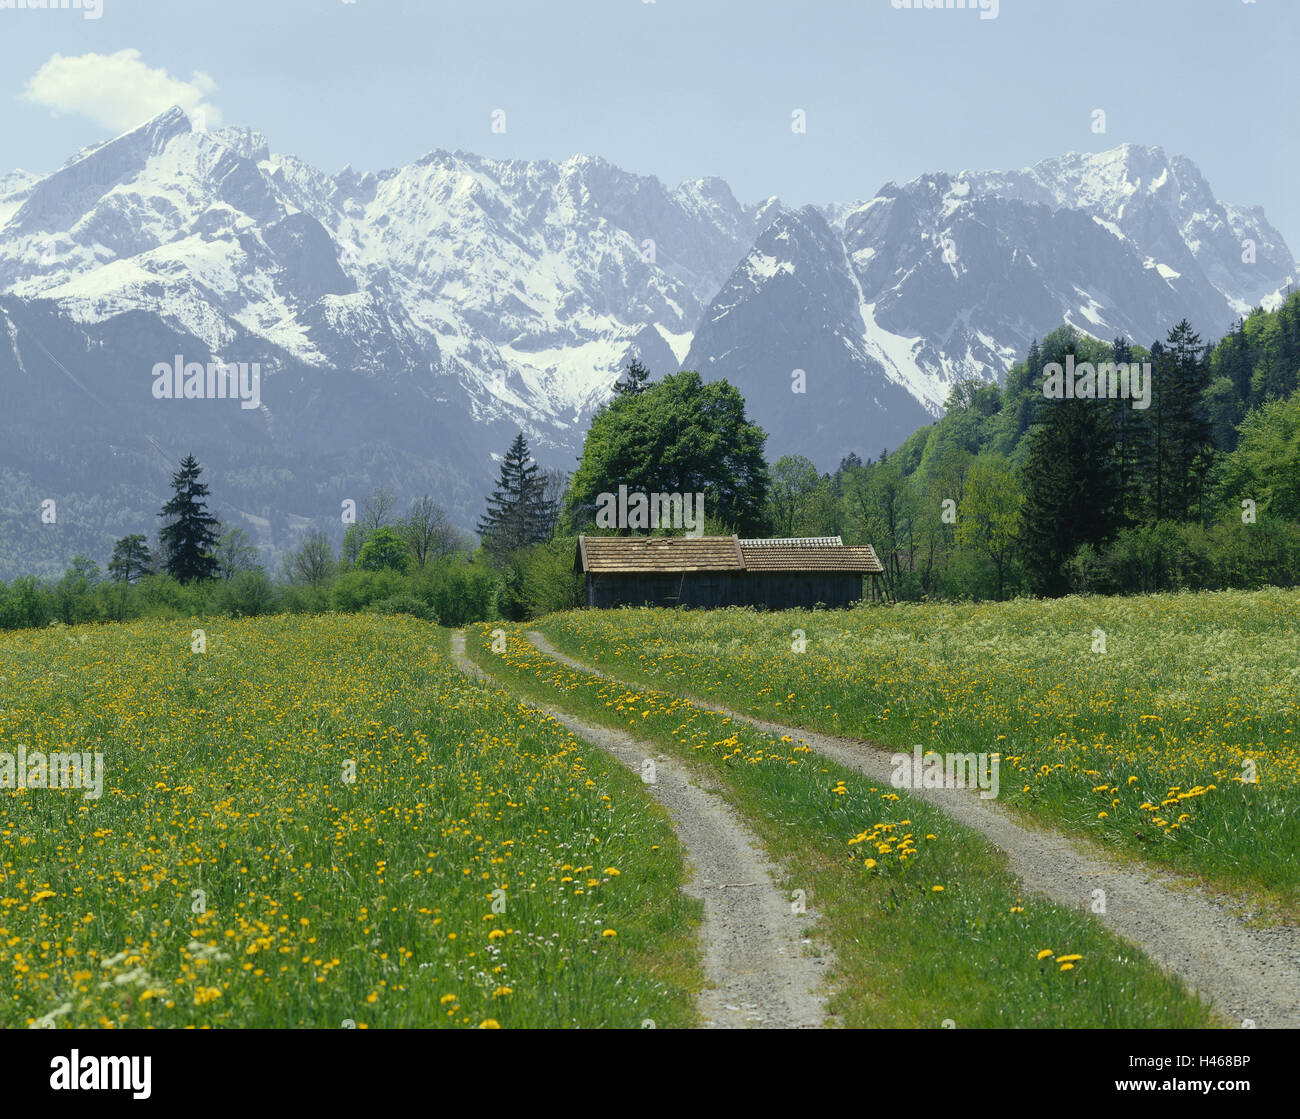 Germany, Upper Bavaria, Farchant (village), dirt road, hut, Wetterstein Mountains, Southern Germany, Bavaria, Werdenfels - Stock Image